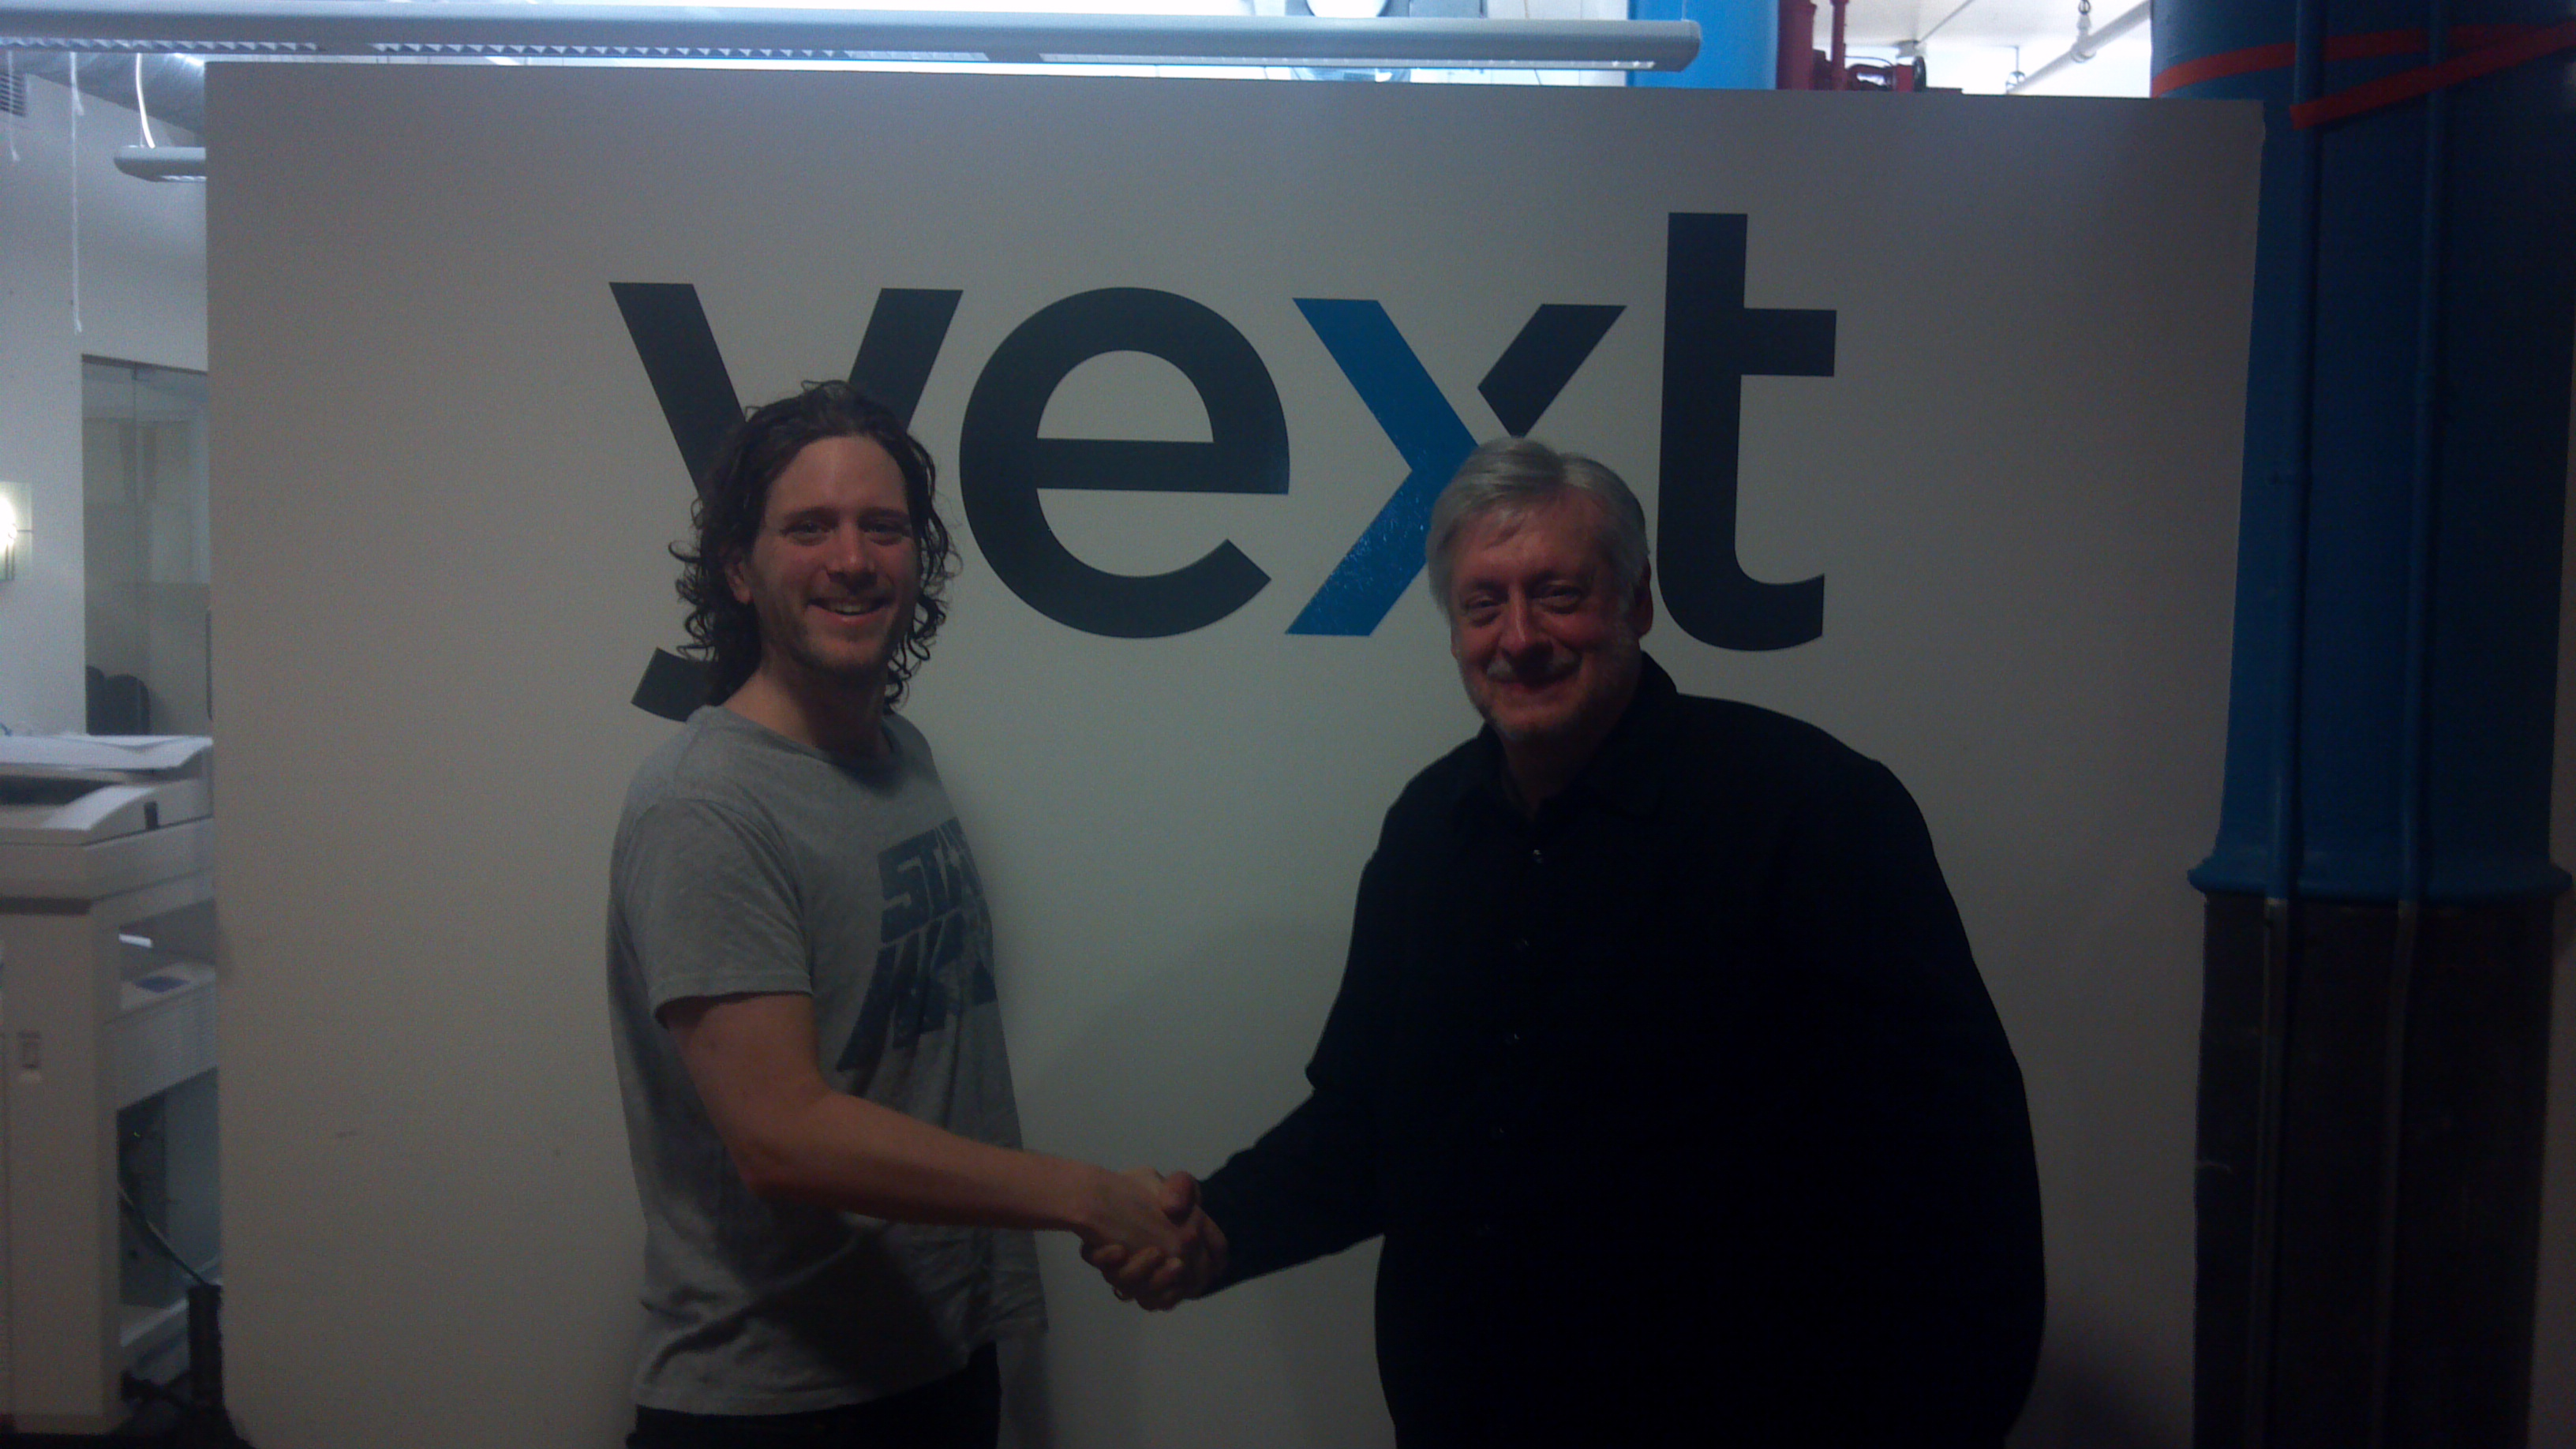 yext and ubl